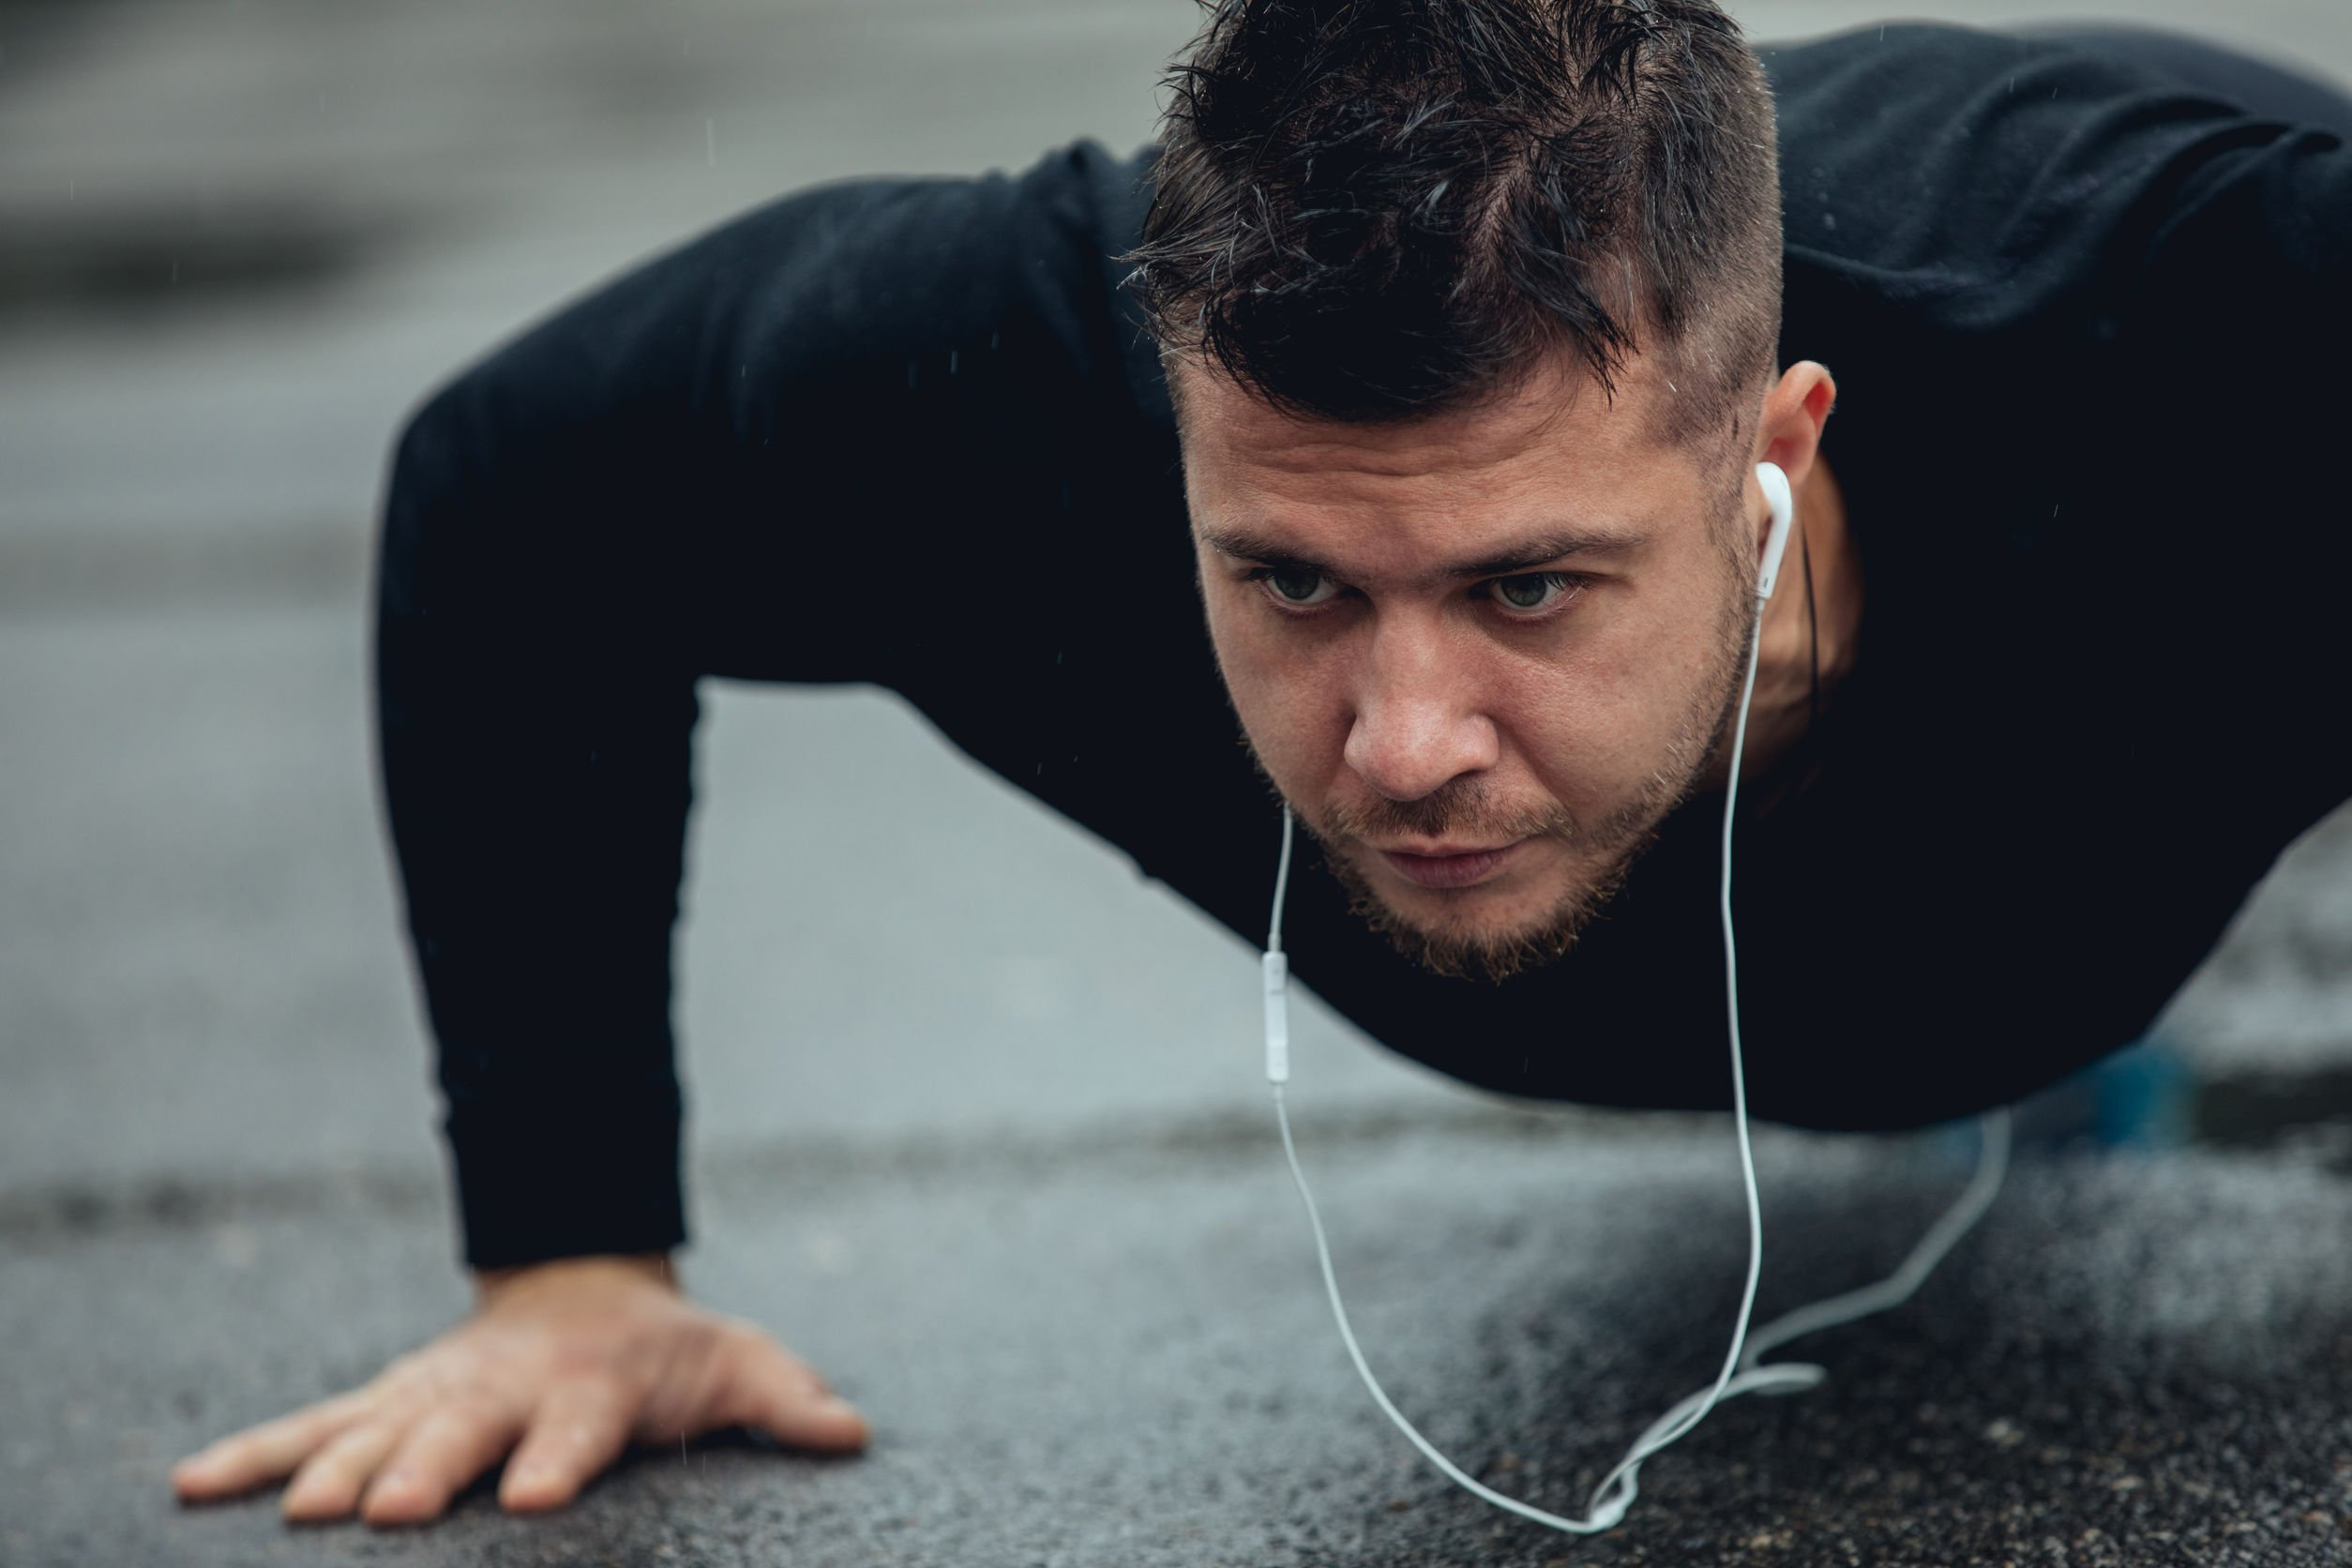 Men Who Can't Do 10 Push-Ups Are At Greater Risk Of Heart Disease, Say Scientists